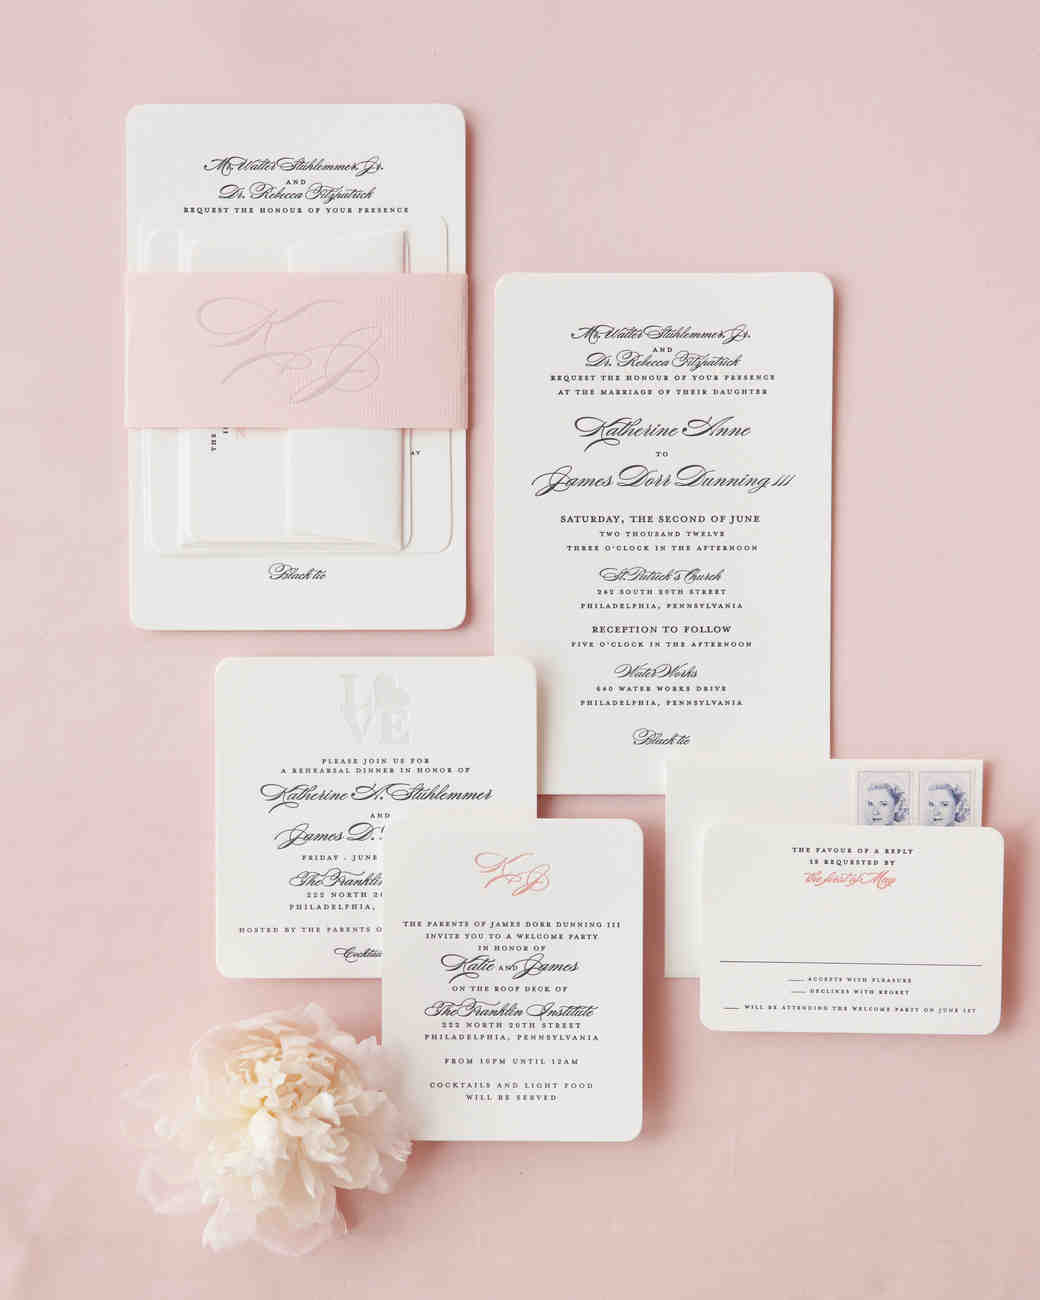 classic wedding invitations for traditional brides and grooms, Wedding invitations